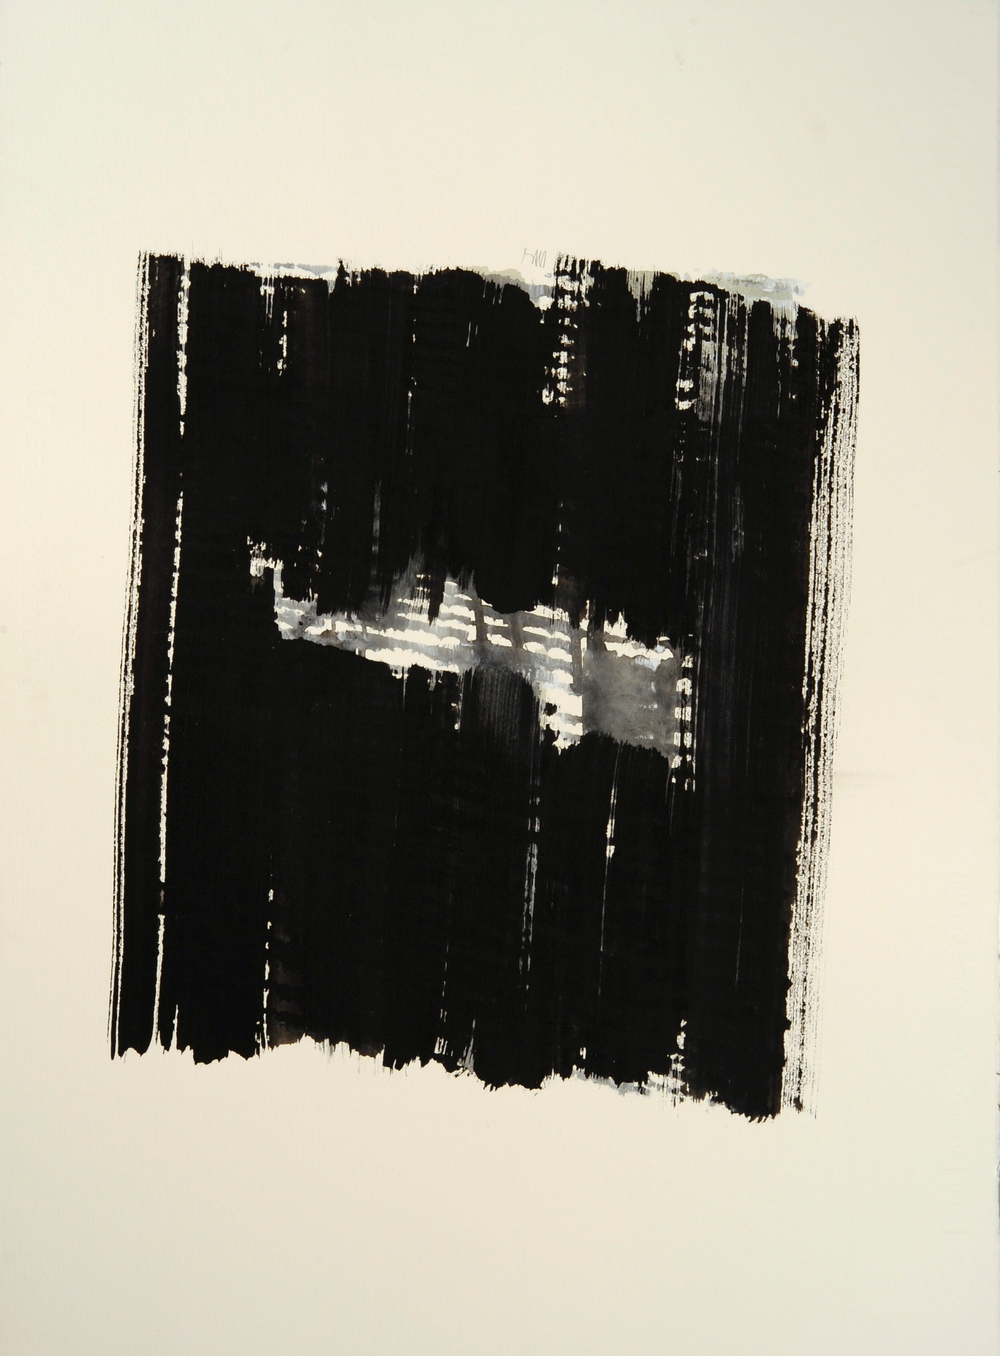 "senza titolo, dalla serie ""13 carte Fabriano"", 1991, acrilico su carta Fabriano, cm 76 x 57  untitled, from the series ""13 carte Fabriano"", 1991, acrylic on Fabriano paper, cm 76 x 57"